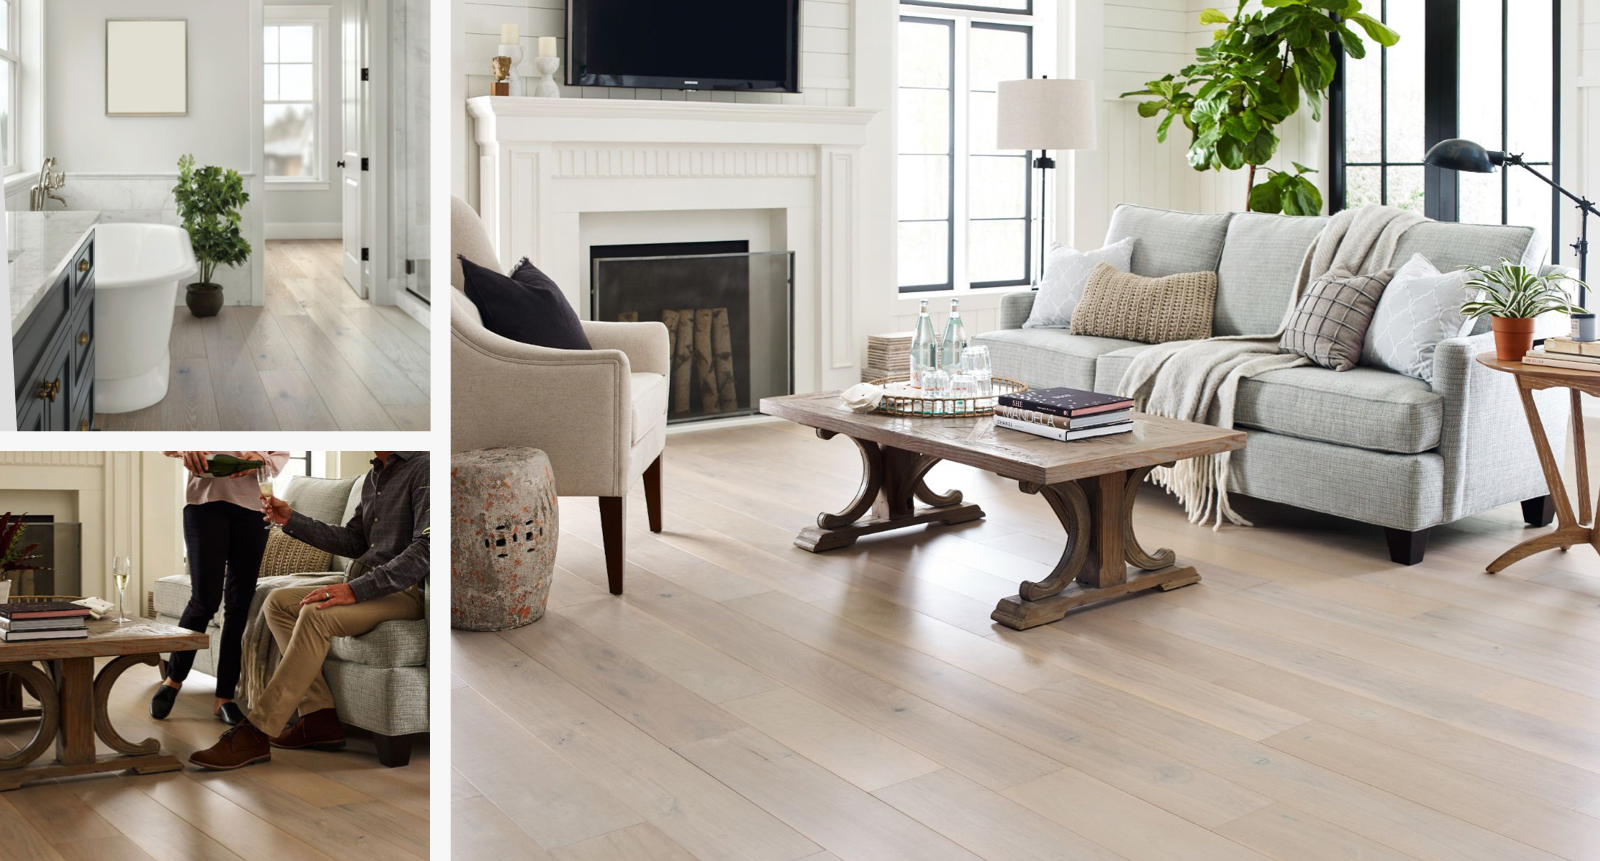 Floorte waterproof hardwood flooring for your home | Jack's Carpet And Tile